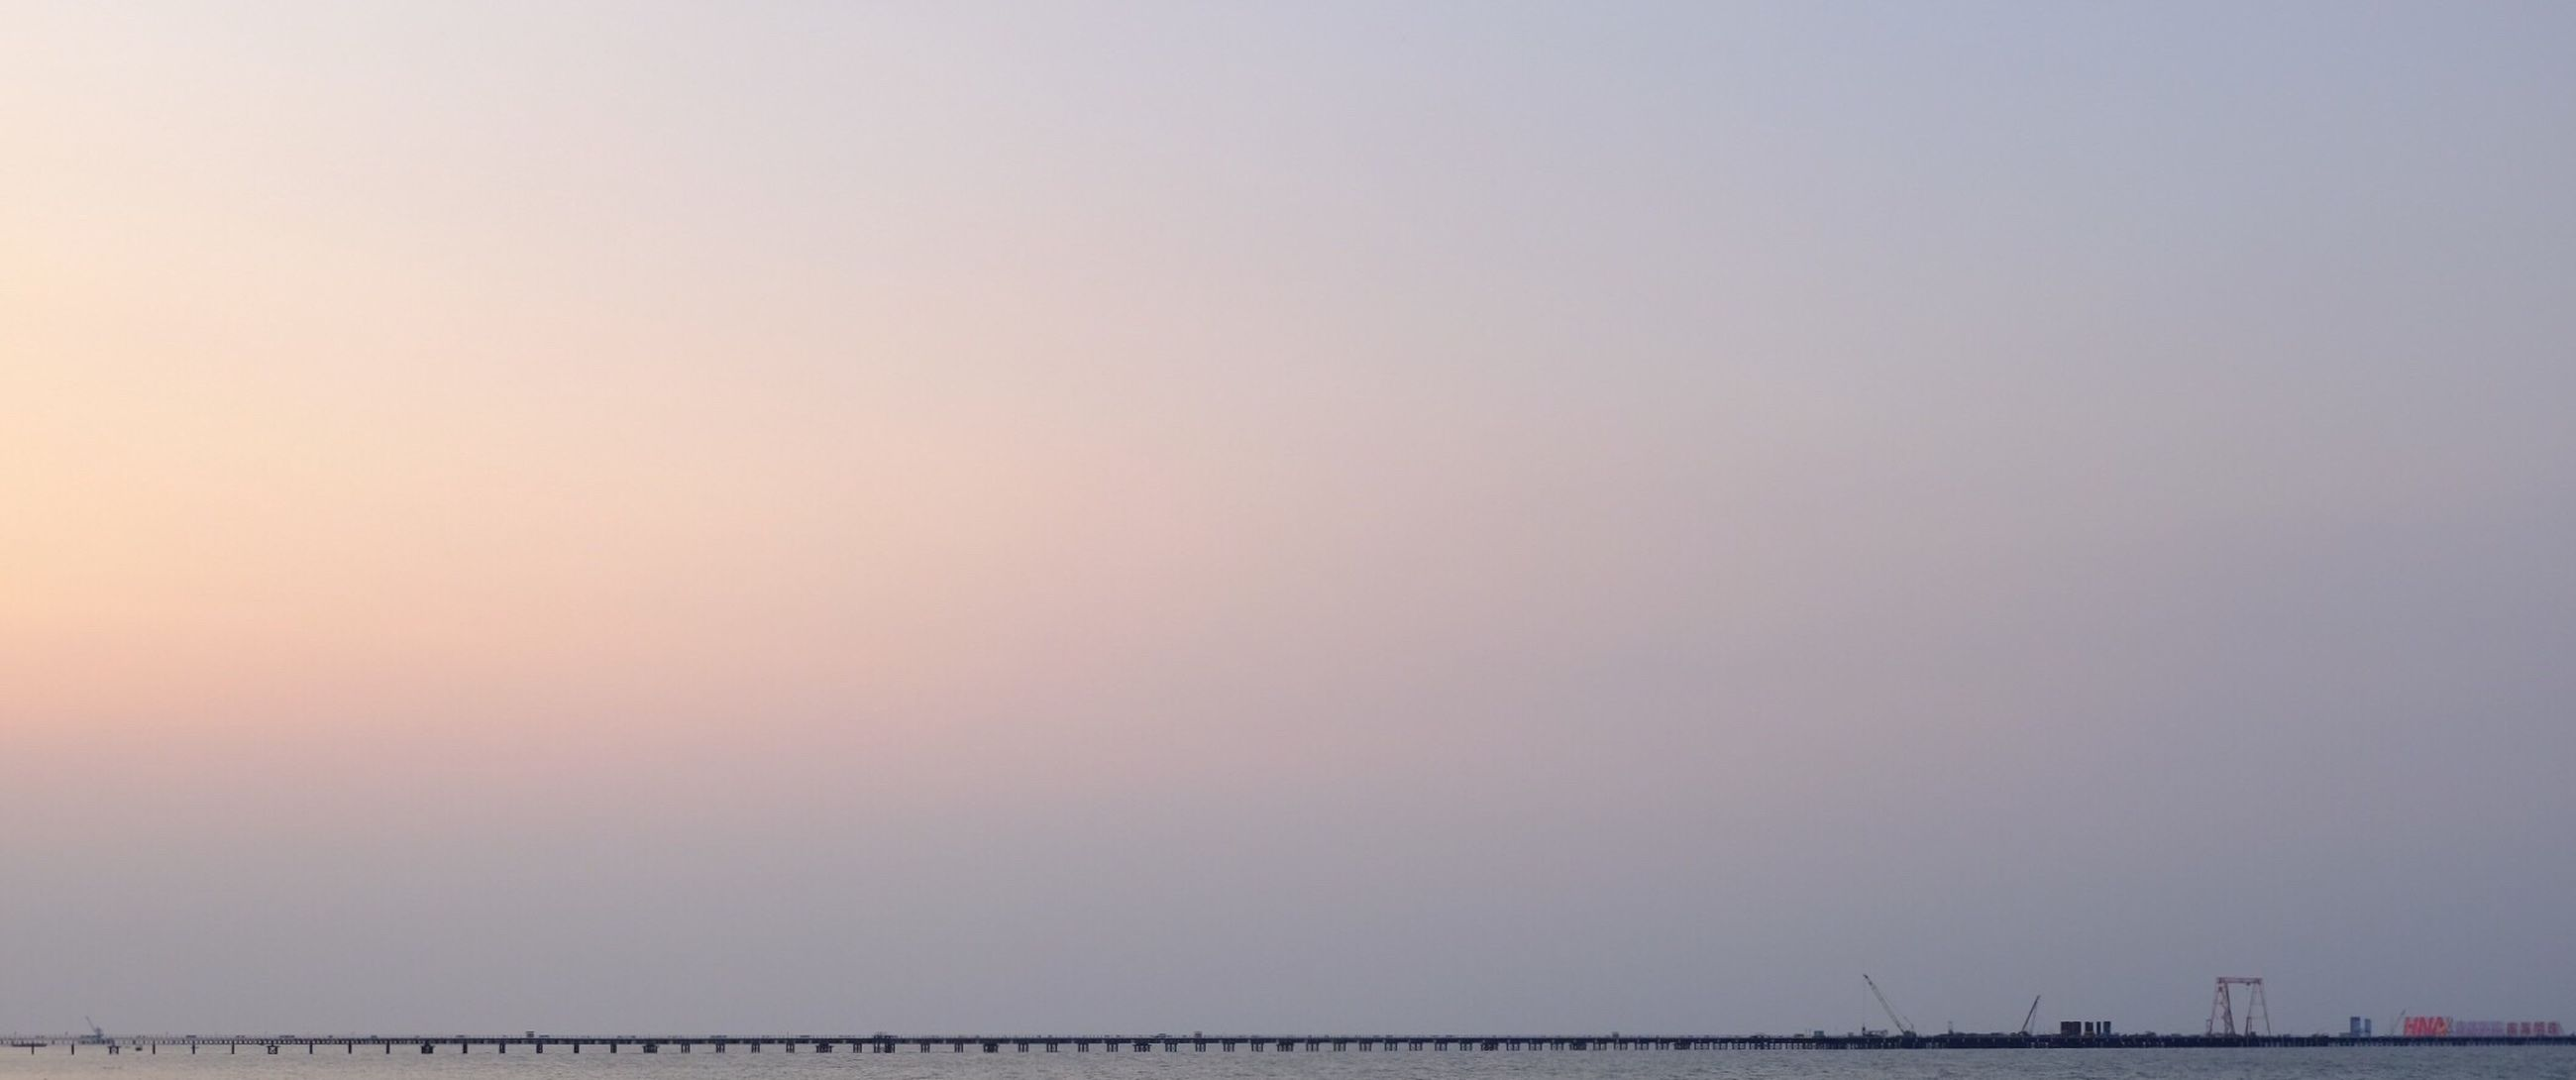 copy space, clear sky, tranquil scene, tranquility, sea, scenics, beauty in nature, nature, horizon over water, water, idyllic, sky, outdoors, no people, sunset, waterfront, foggy, remote, day